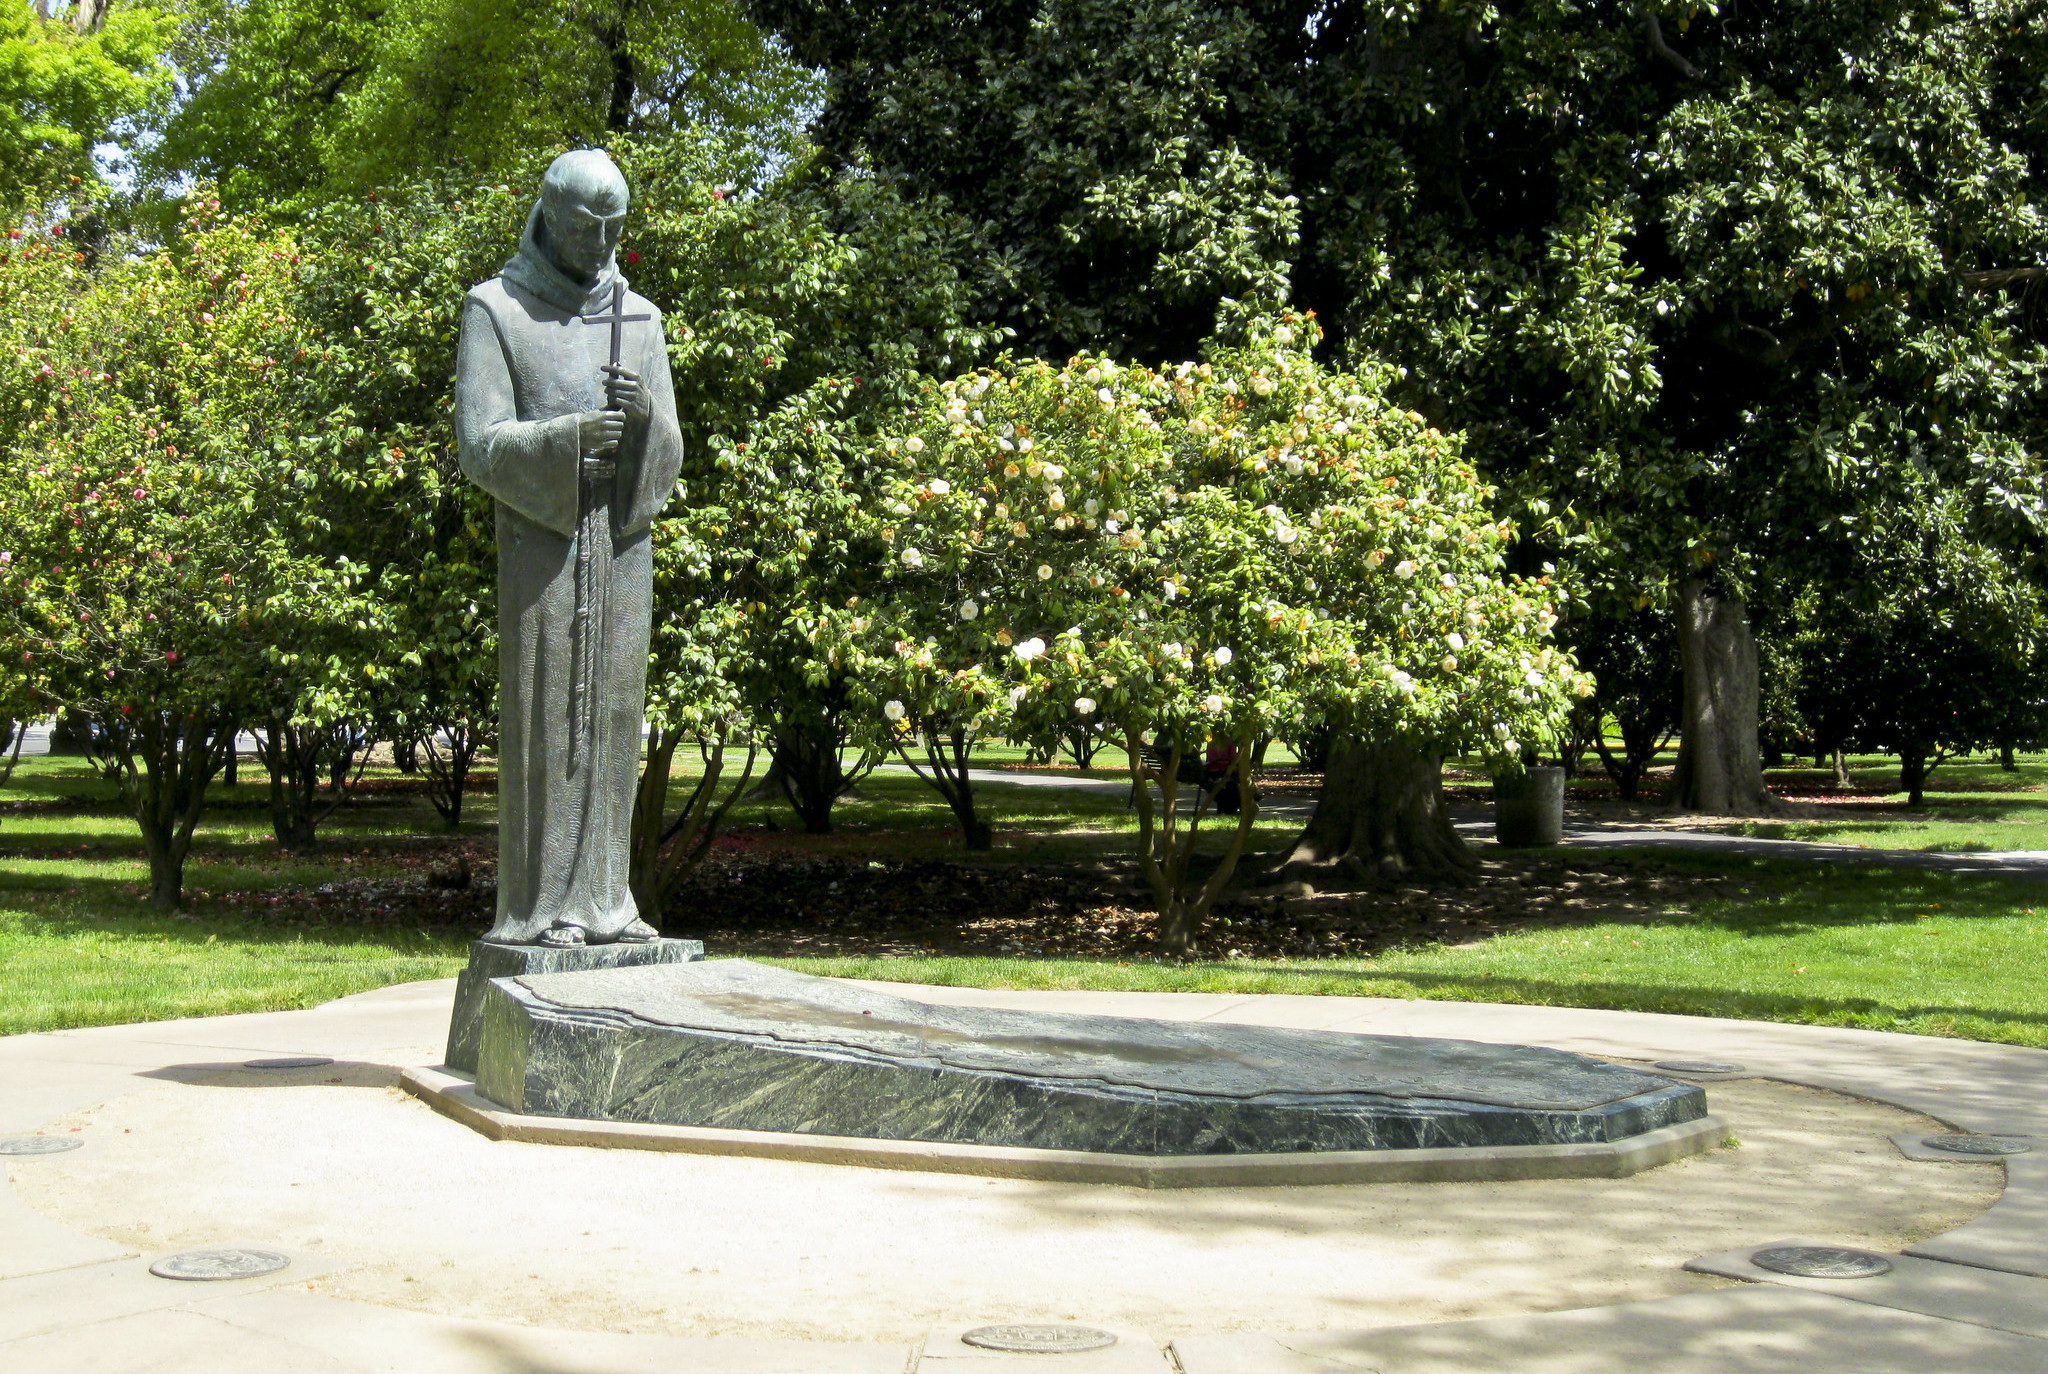 The sadness felt about removing Junipero Serra's statue from Capitol Park